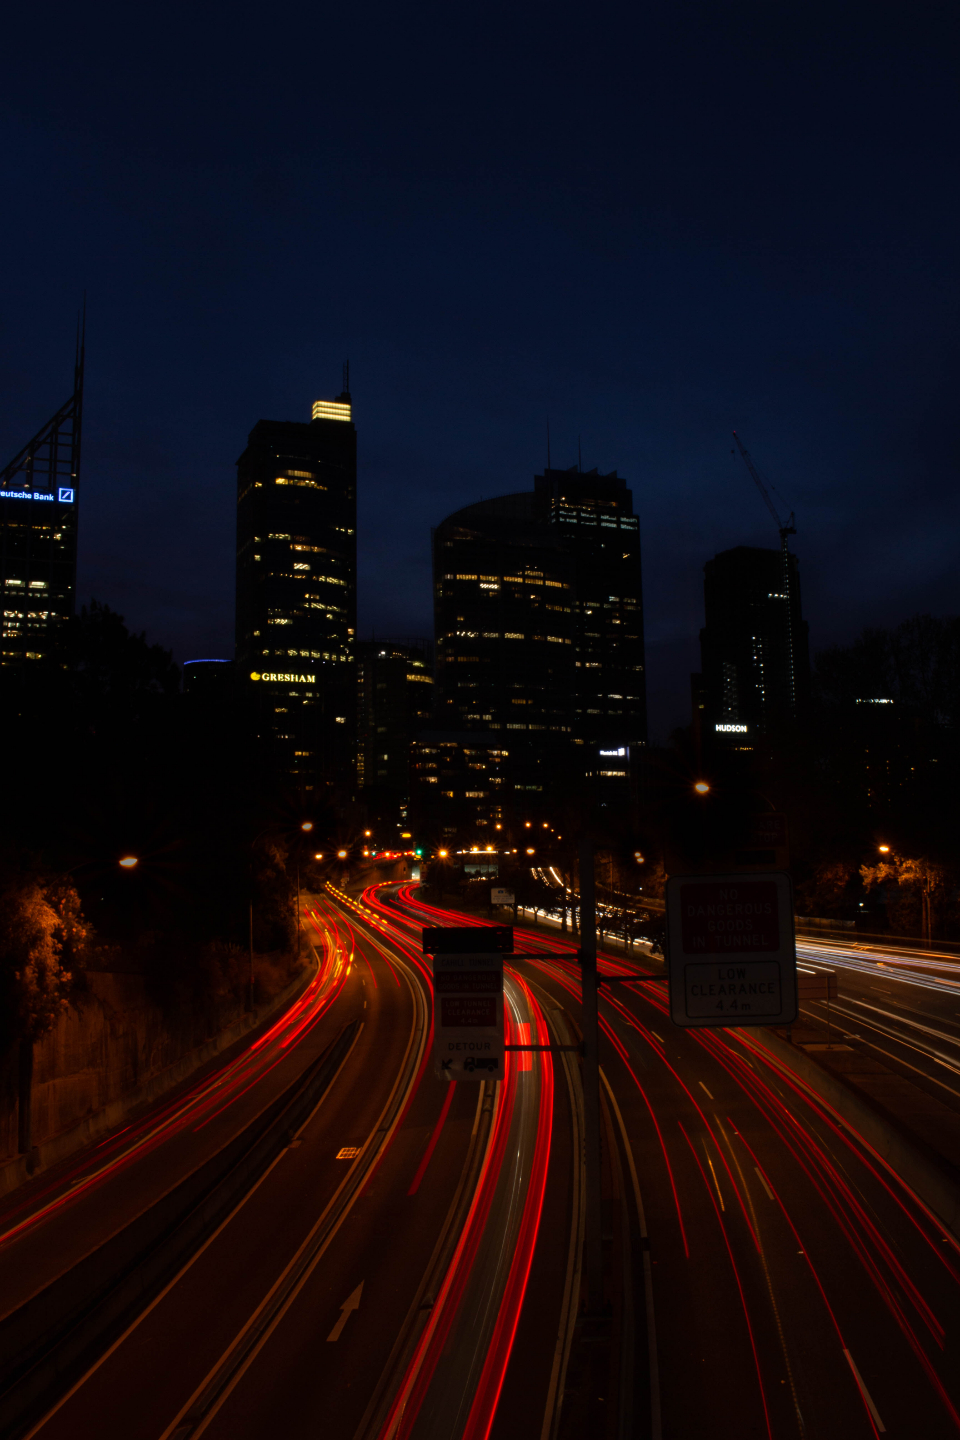 city light trails night dark urban cars headlights busy buildings commute travel transportation traffic